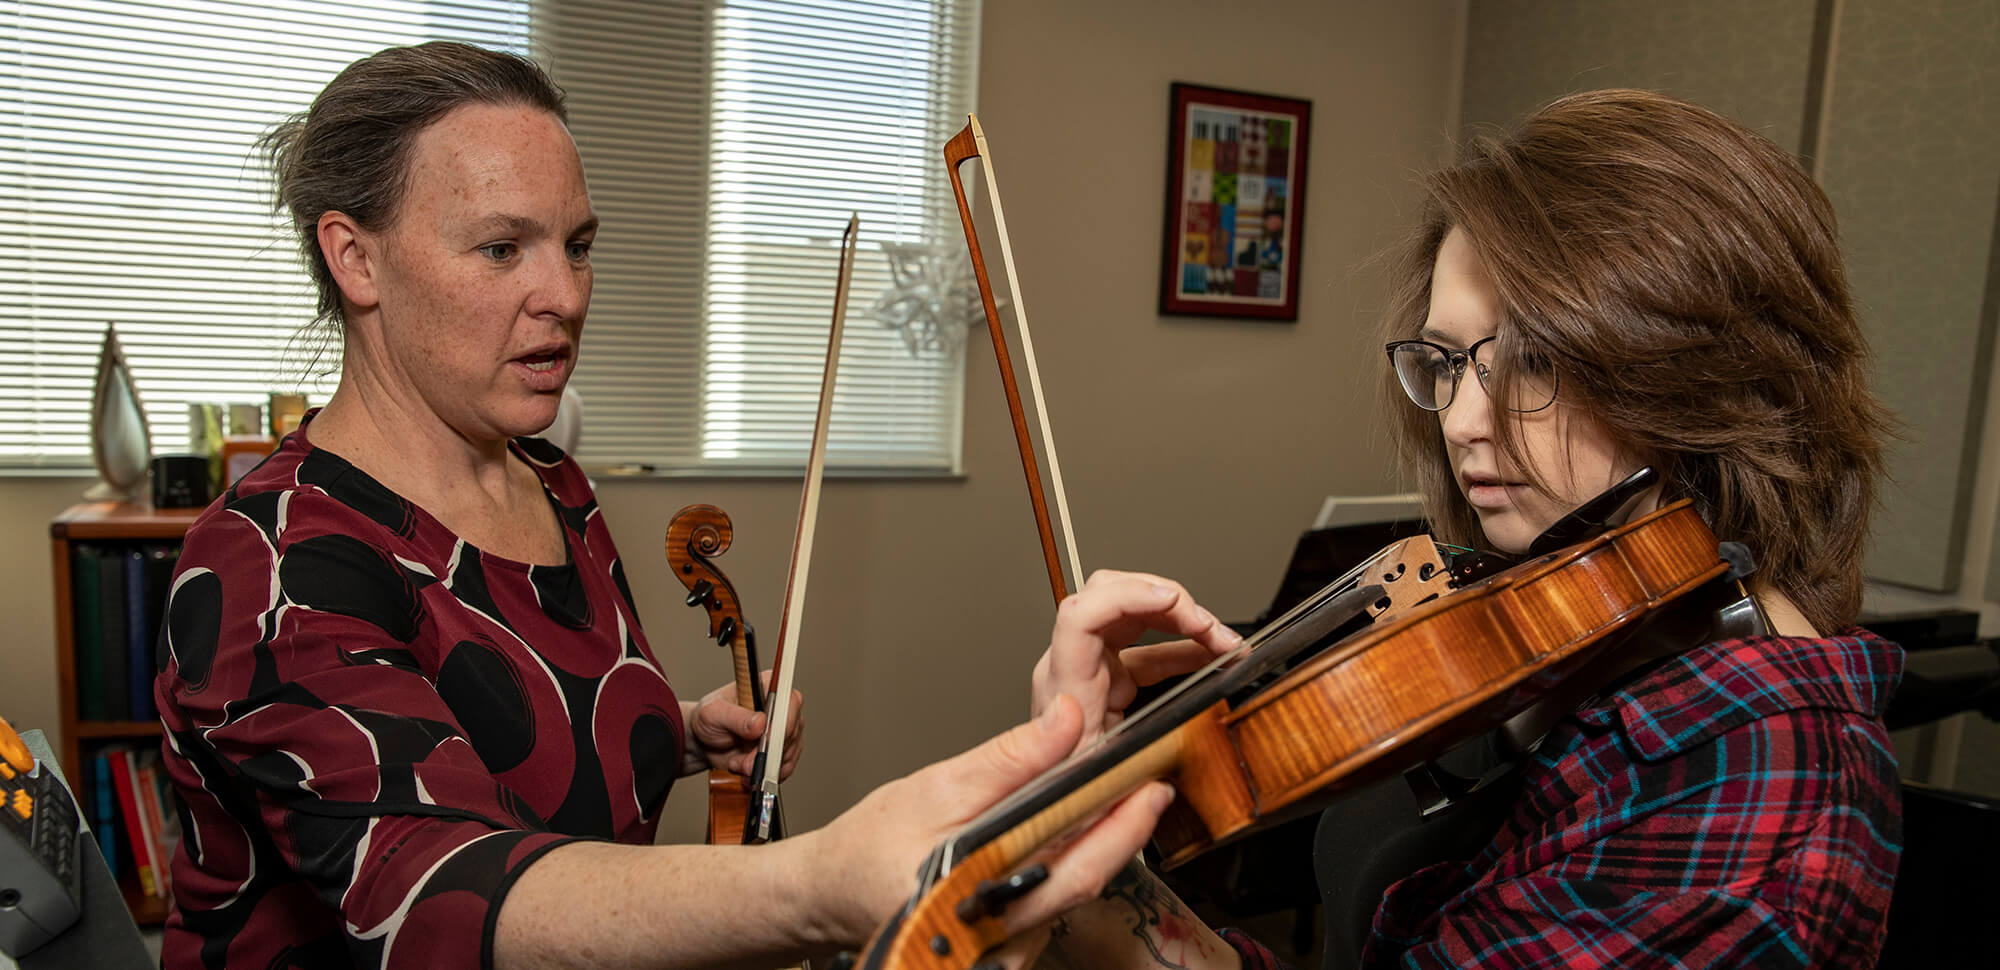 Casper College instructor gently adjust the handgrip of a student playing the violin.